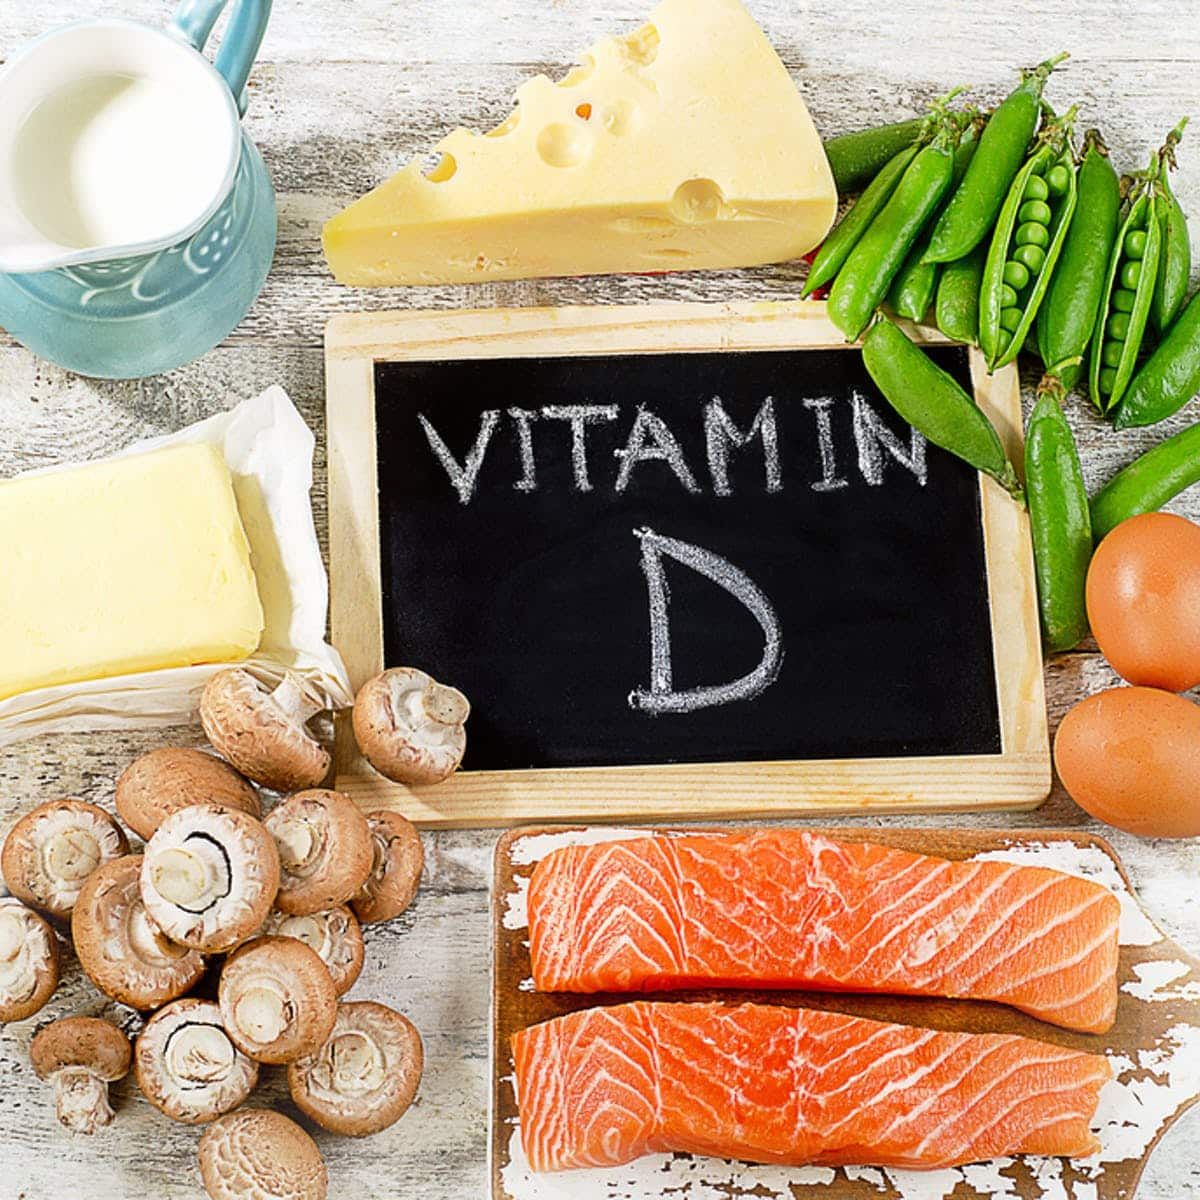 Vitamin d for strength, immunity and mood